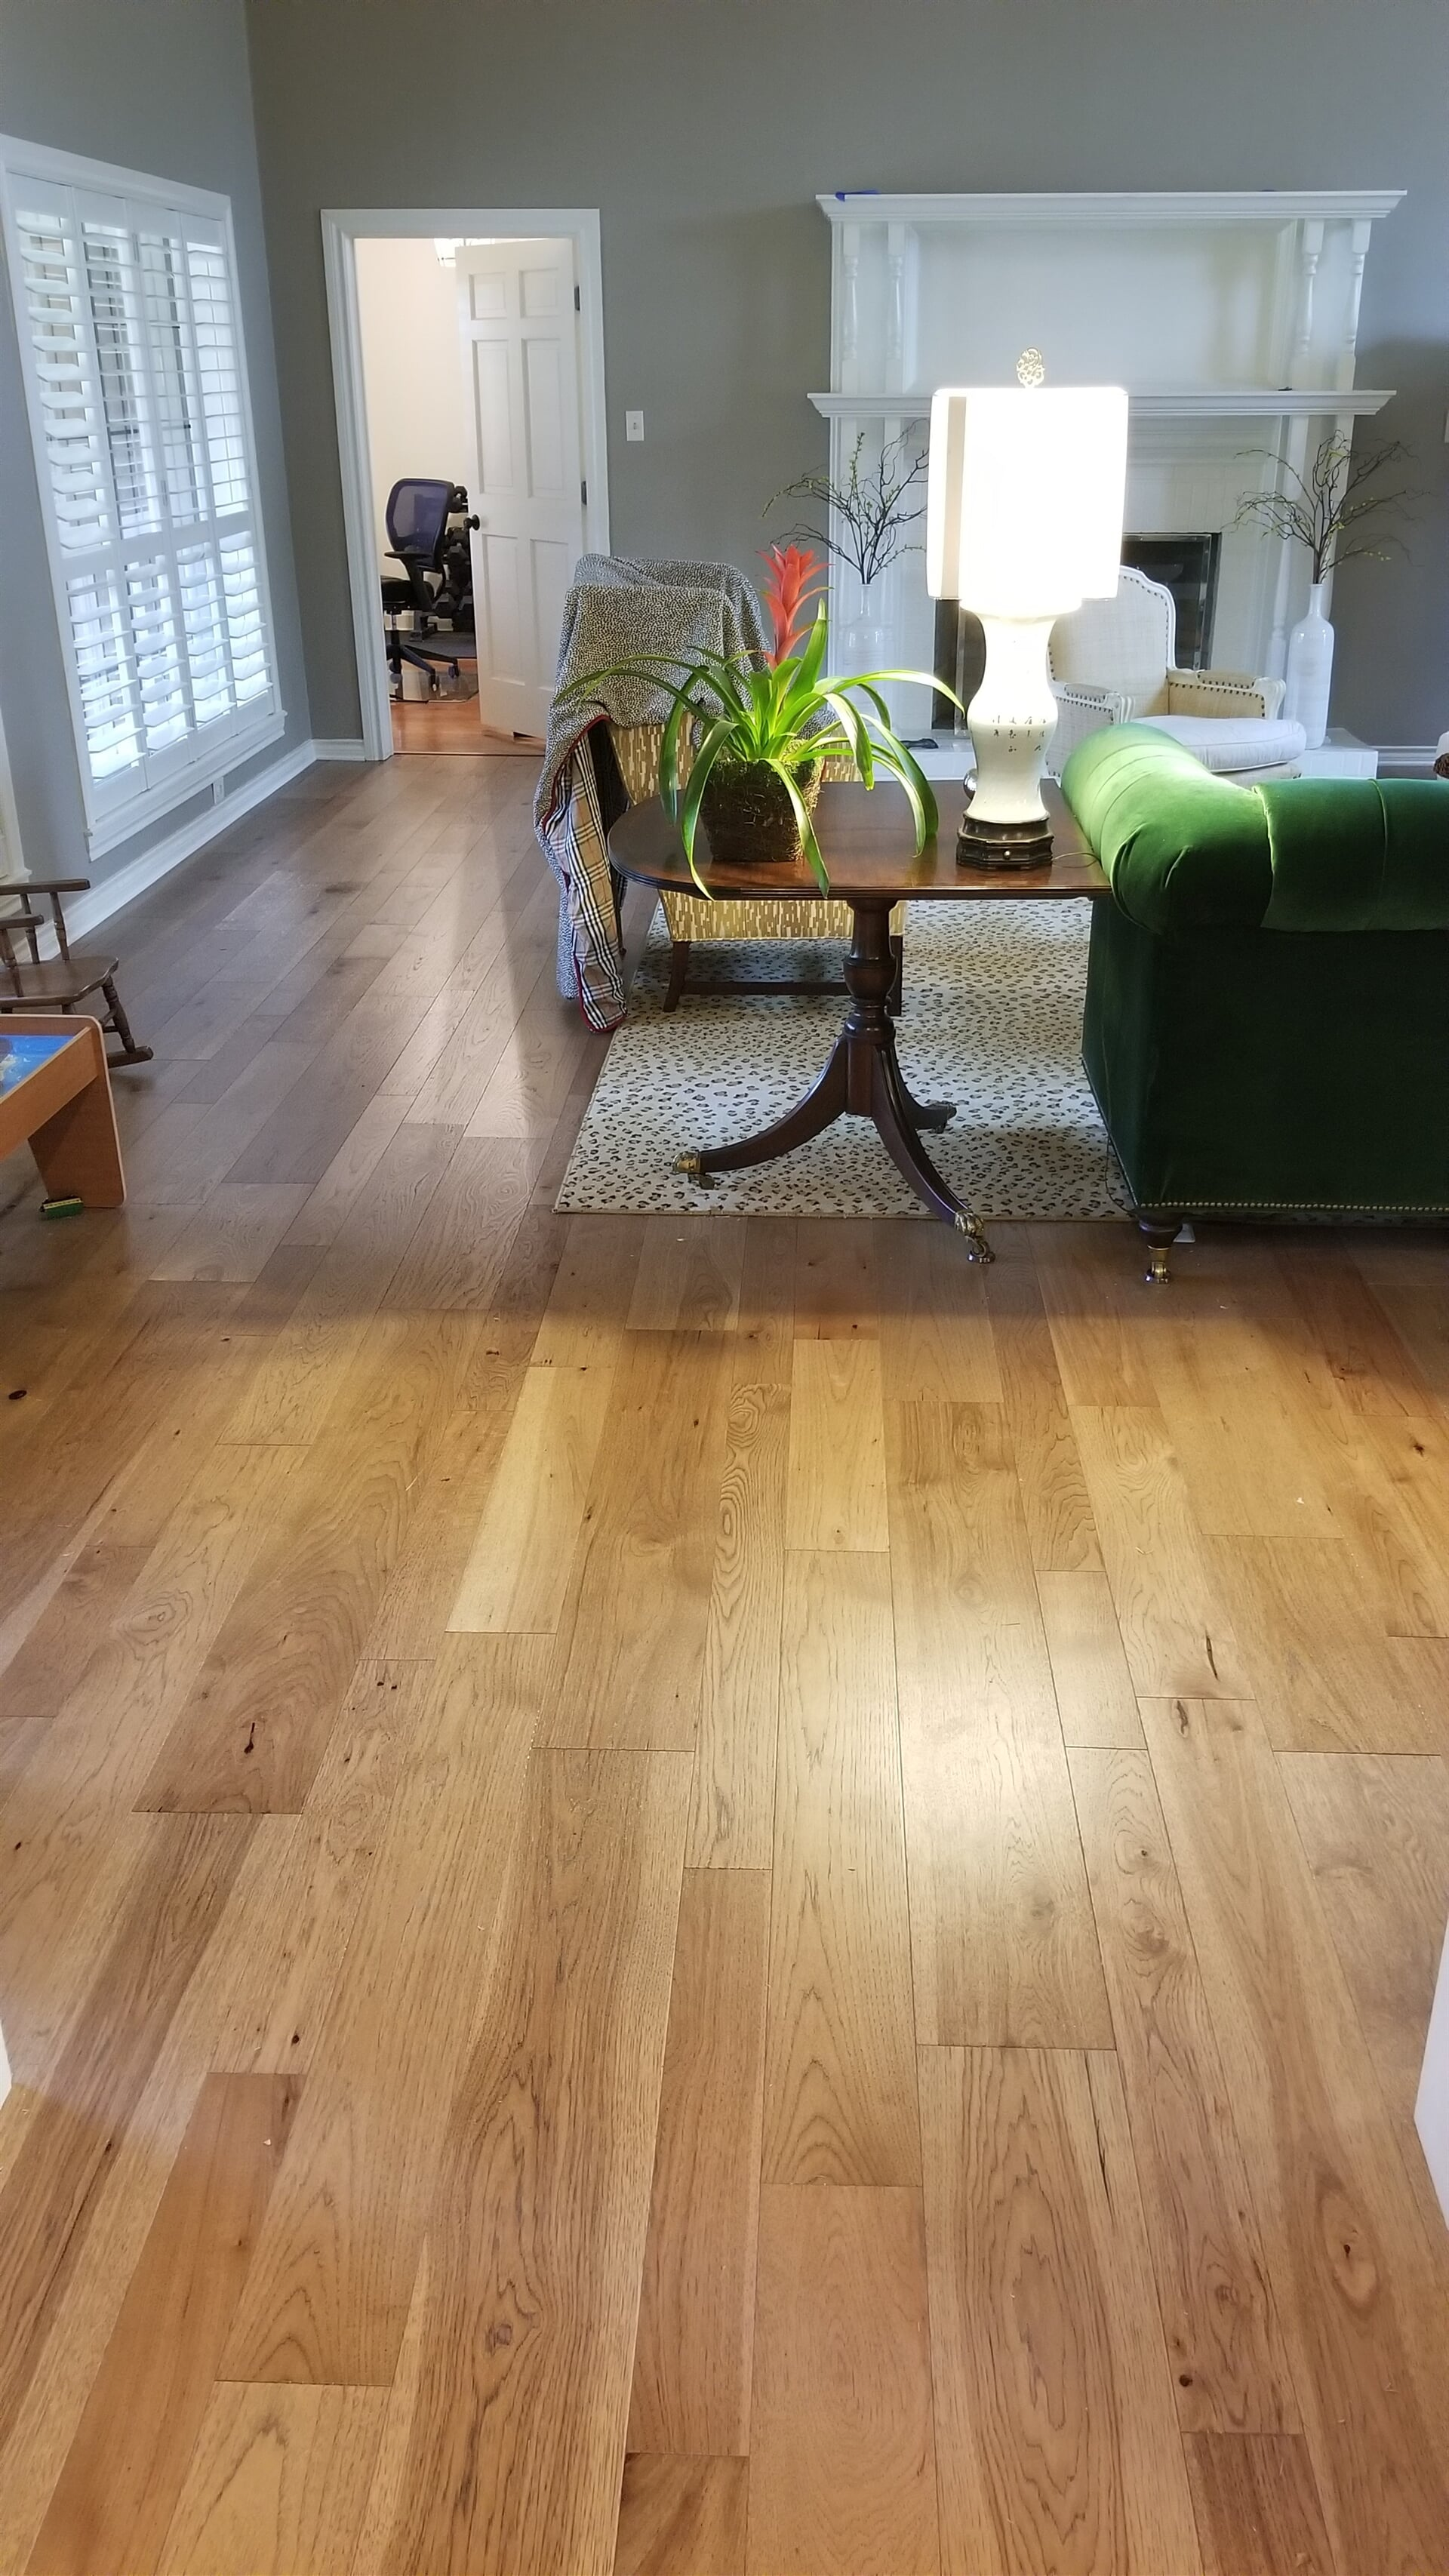 Classic hardwood flooring in Whitehouse, TX from East Texas Floors